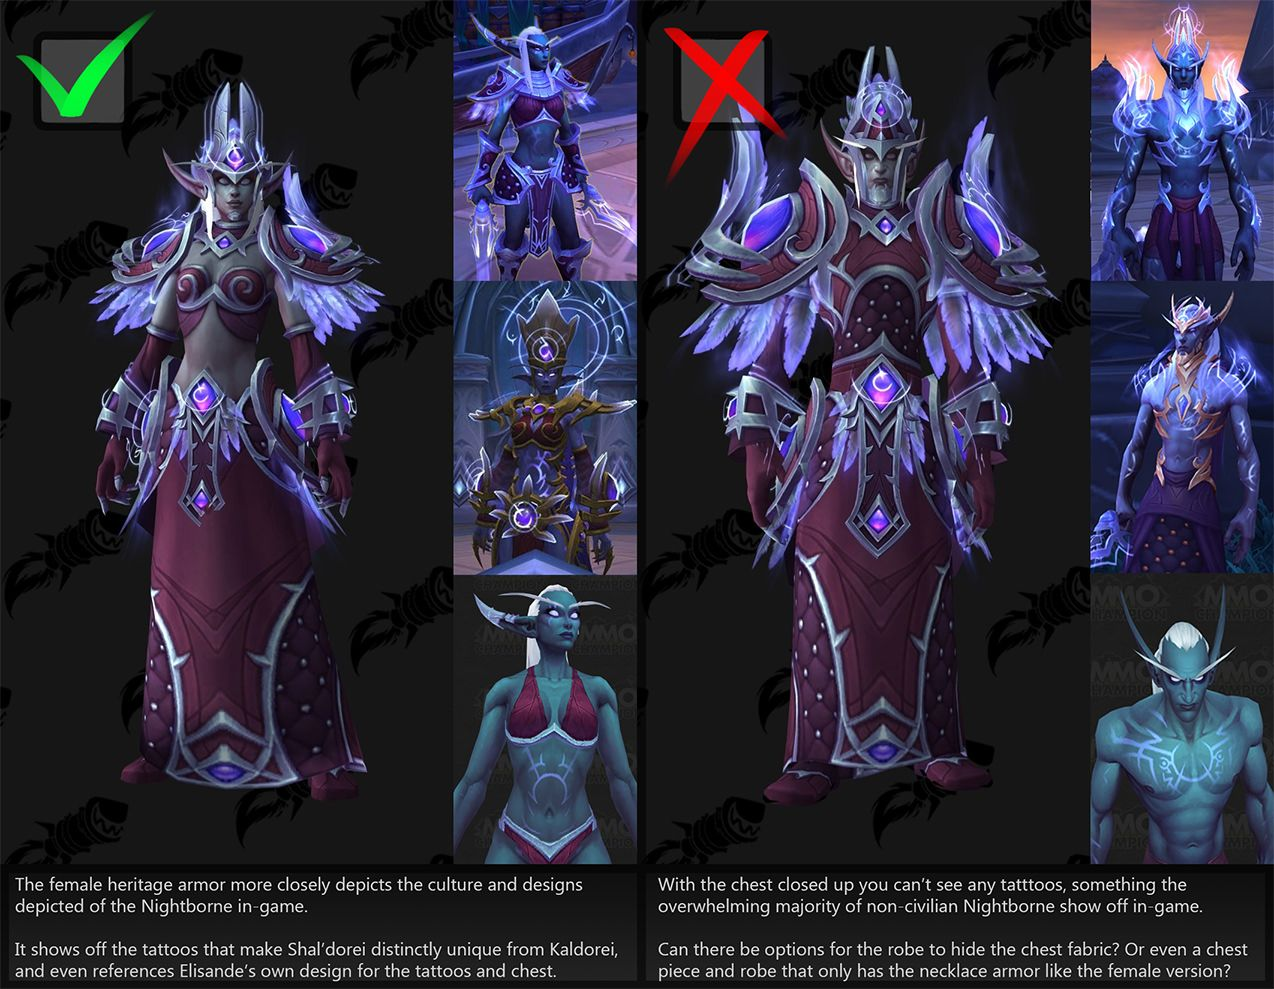 Request Can We Get Some Options For The Male Nightborne Heritage Armor Worldofwarcraft Blizzard Hearthstone Wow War World Of Warcraft Warcraft Dark Elf Really finishes the heritage armor's look. male nightborne heritage armor